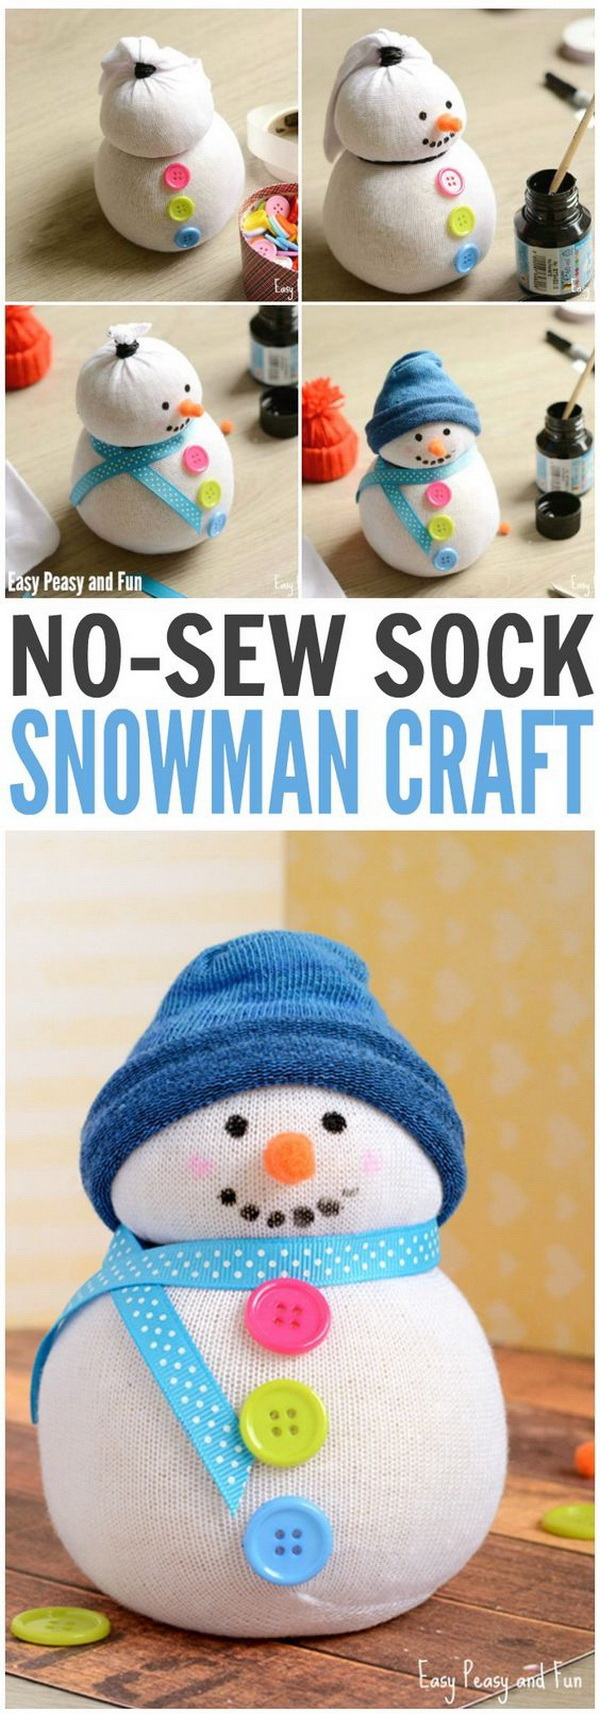 No-Sew Sock Snowman Craft. Upcycle all those odd socks in your laundry basket by making a sock snowman for winter. It makes a cute DIY gift or for a unique door stopper for the winter season.